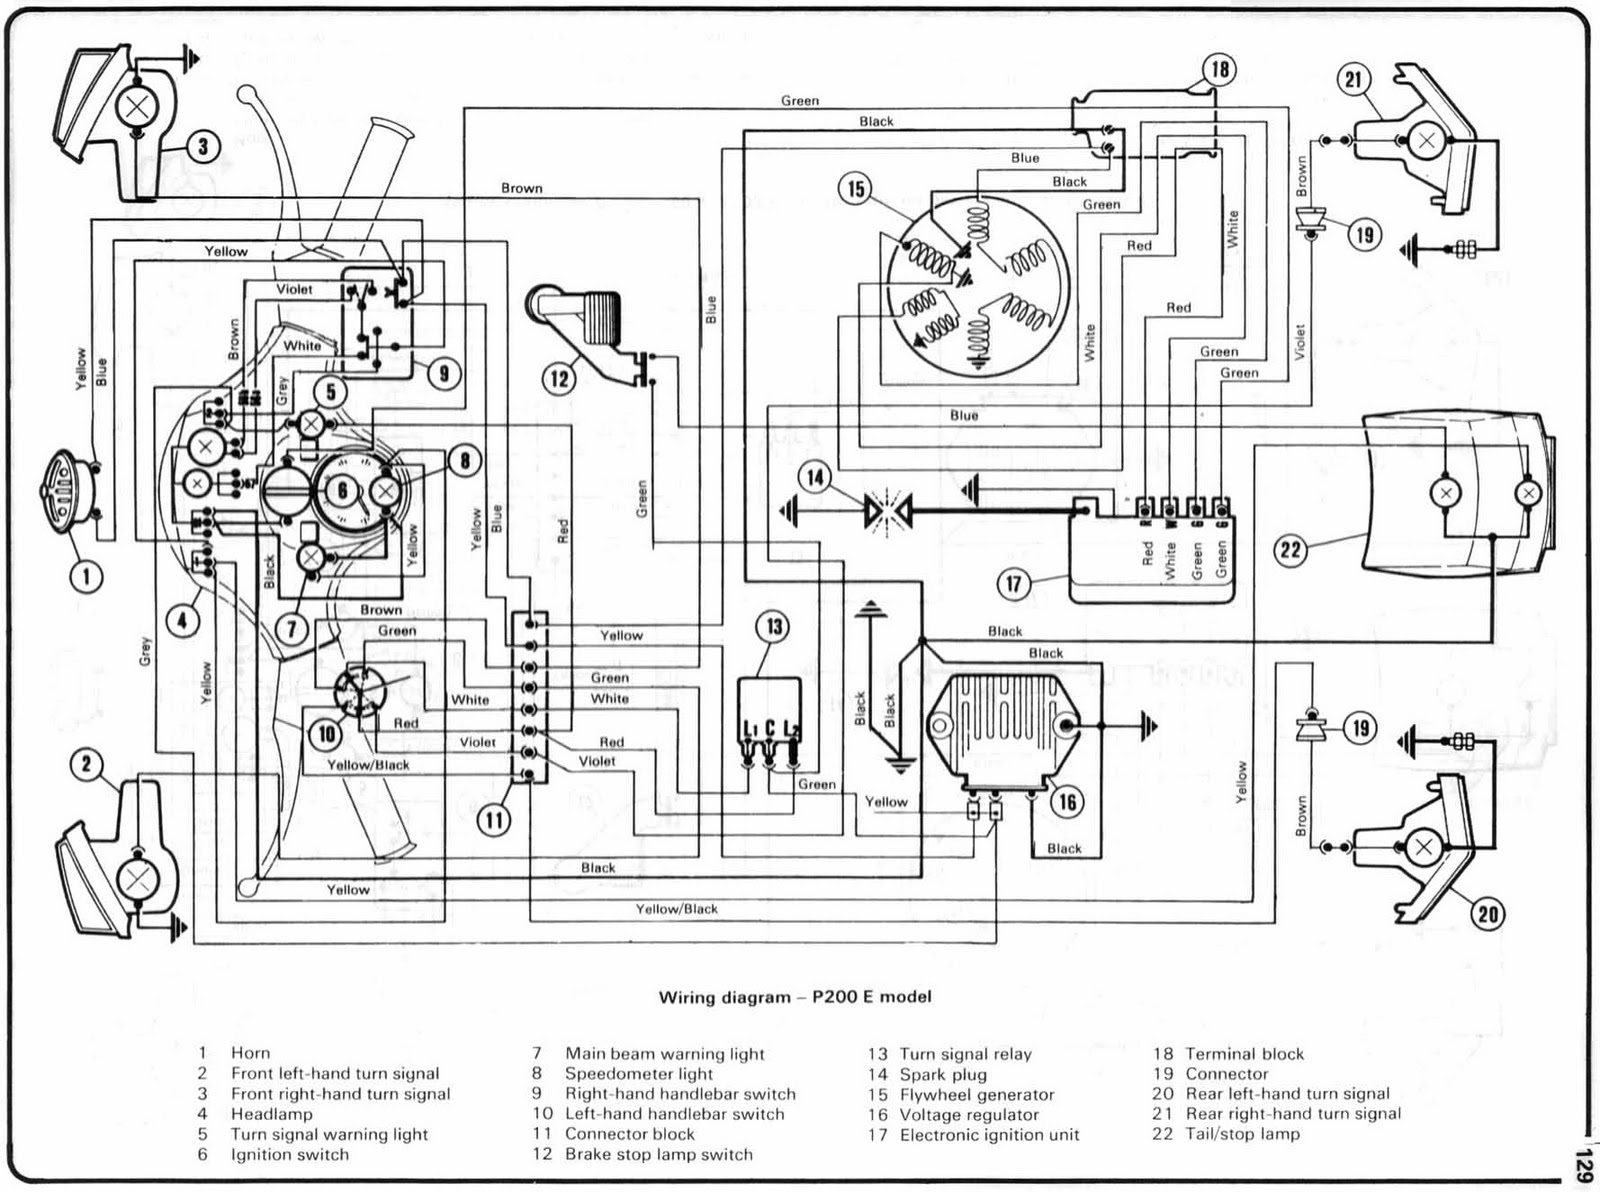 Proa Vespa P200 E Model Wiring Diagram